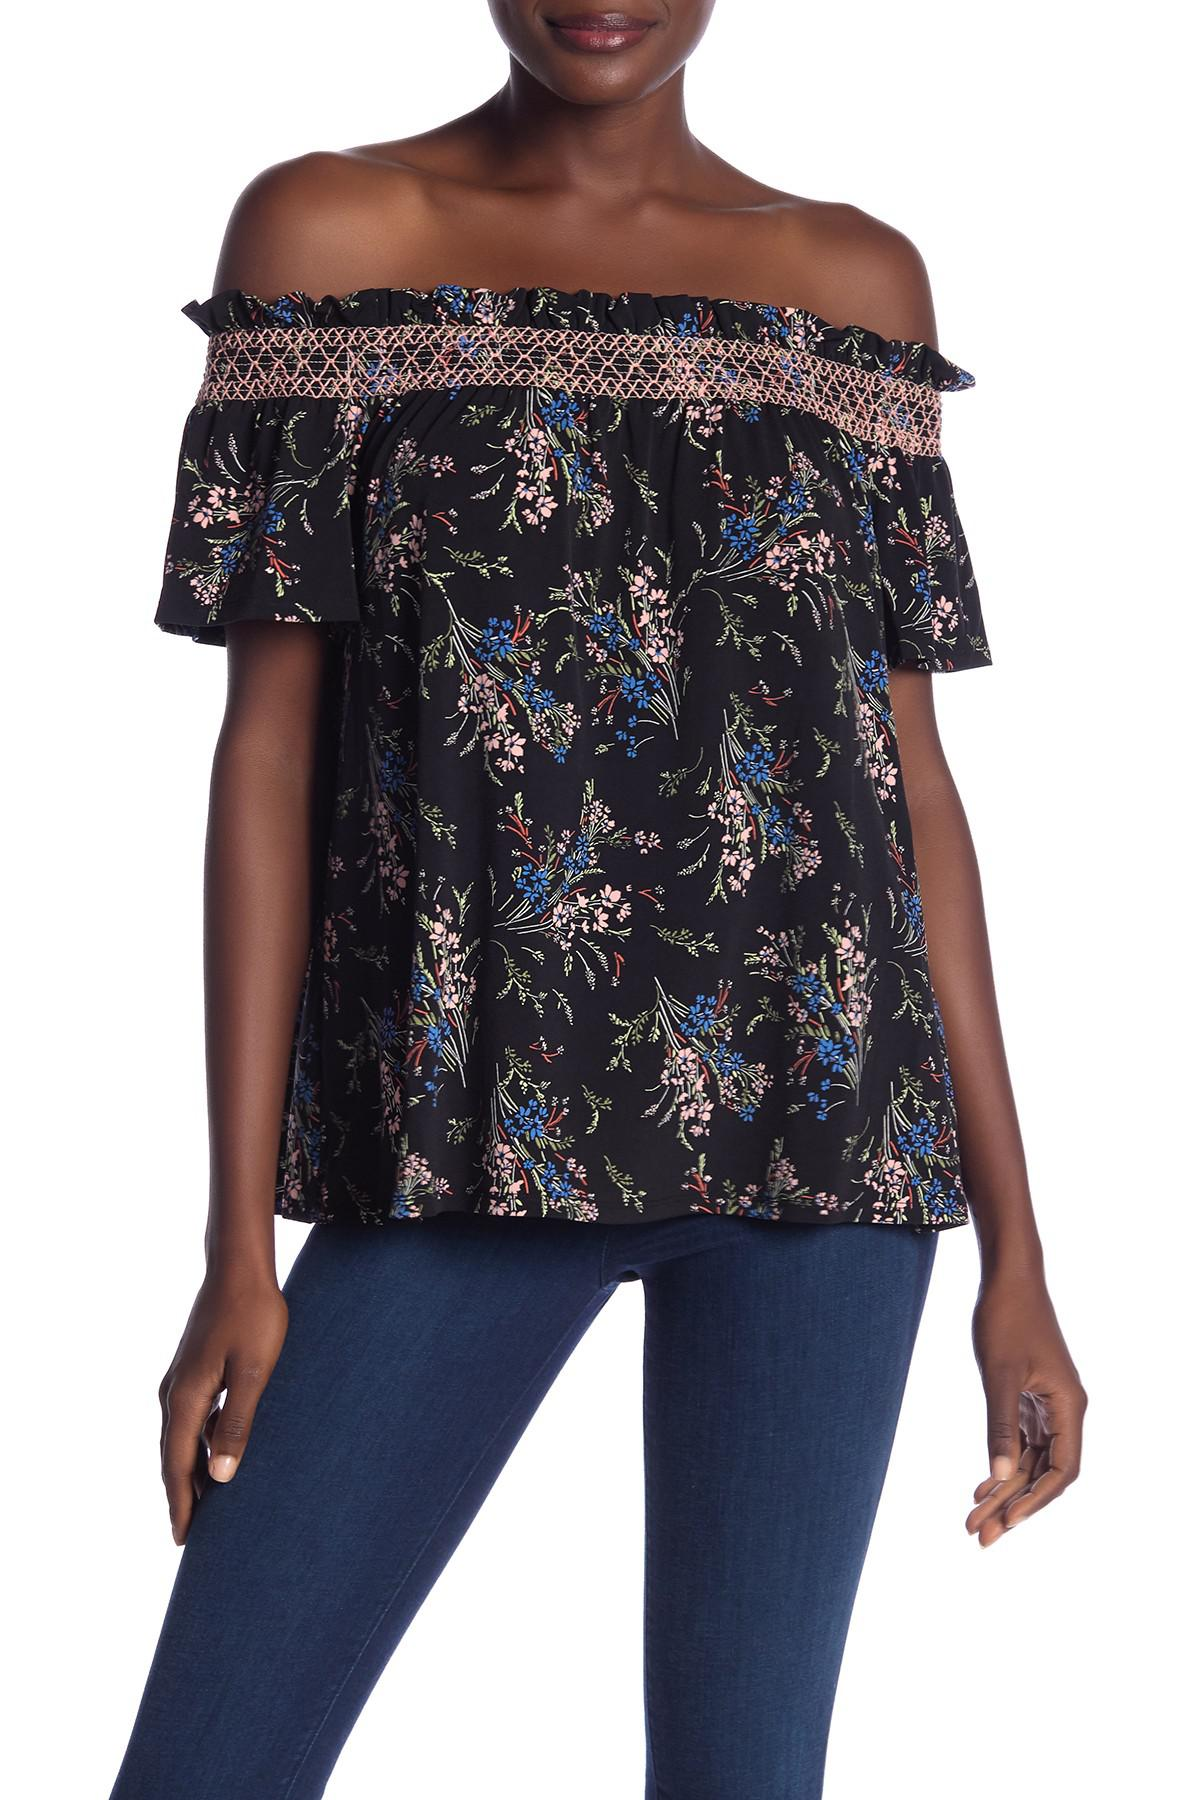 0fa91e227cdbb Lyst - Cece By Cynthia Steffe Floral Off-the-shoulder Short Sleeve ...